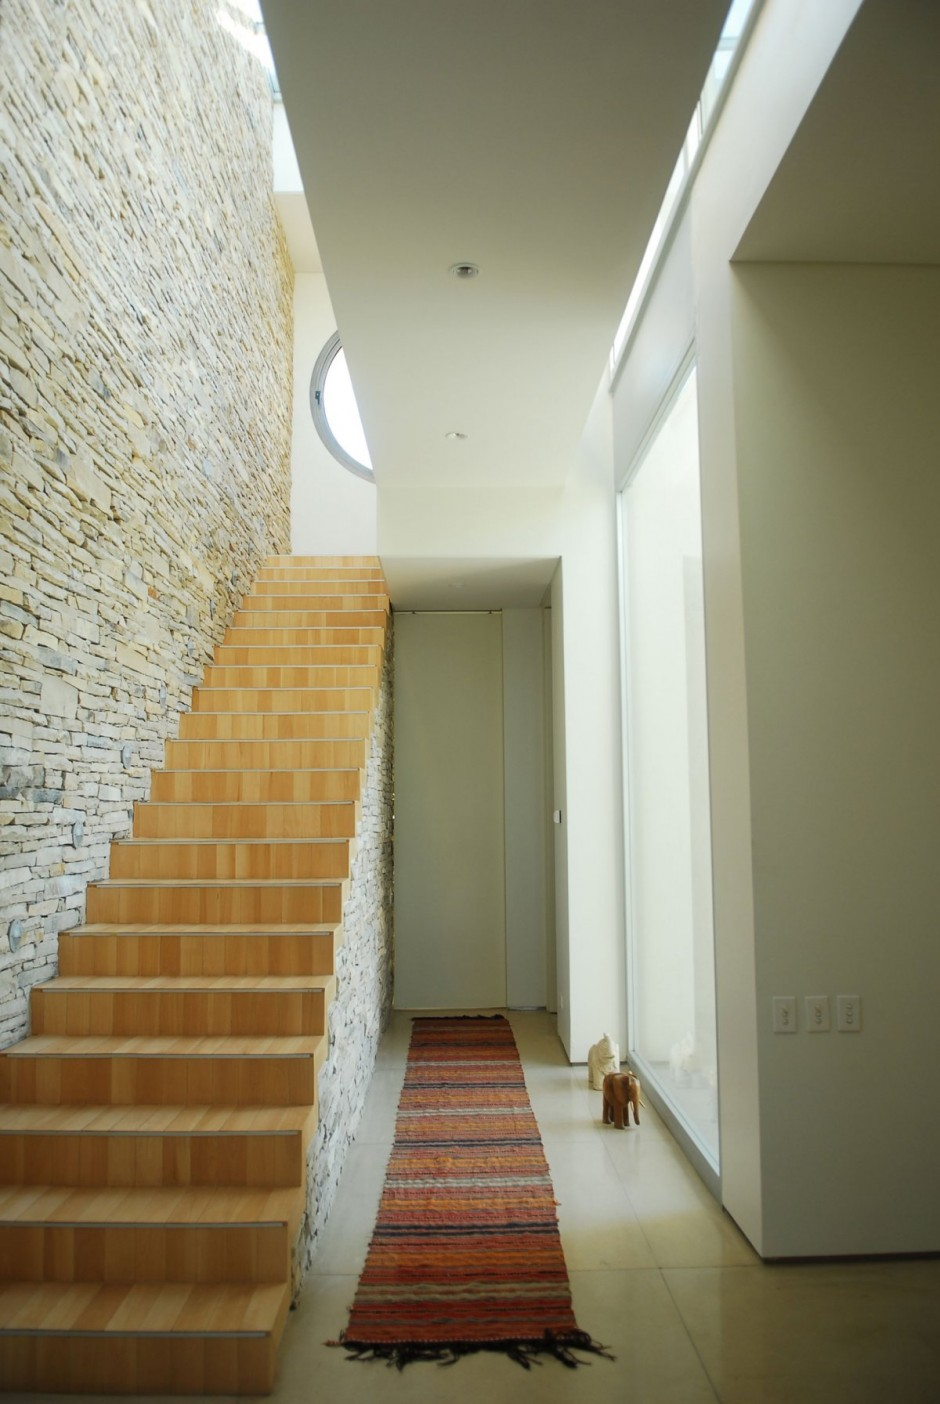 Innentreppen Modern Internal Stairwell In Stone And Wood | Interior Design Ideas.